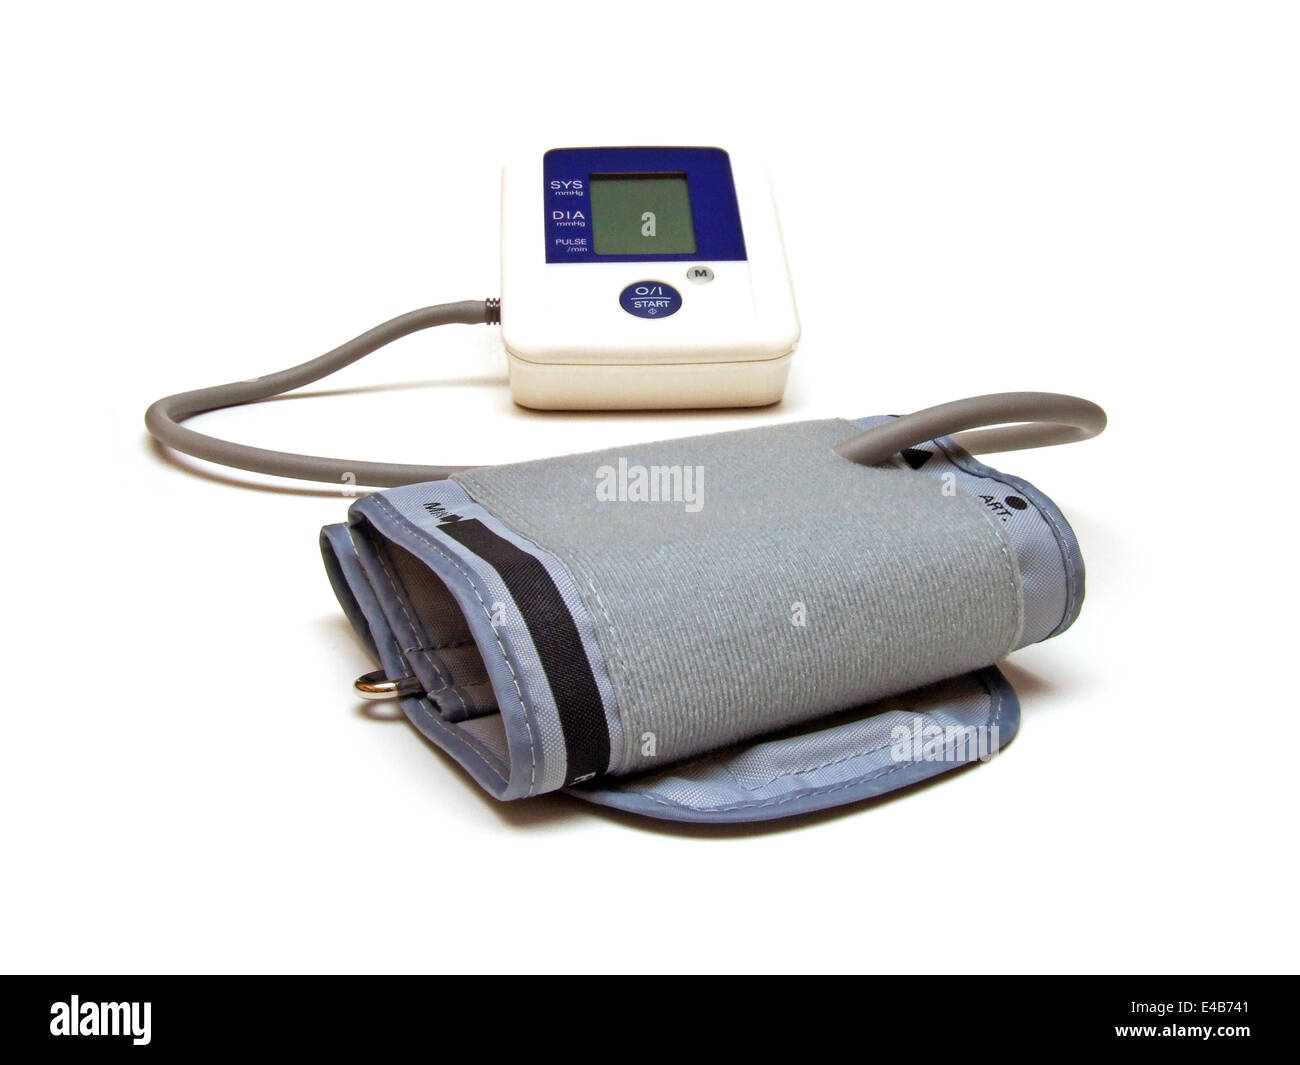 blood pressure meter - Stock Image